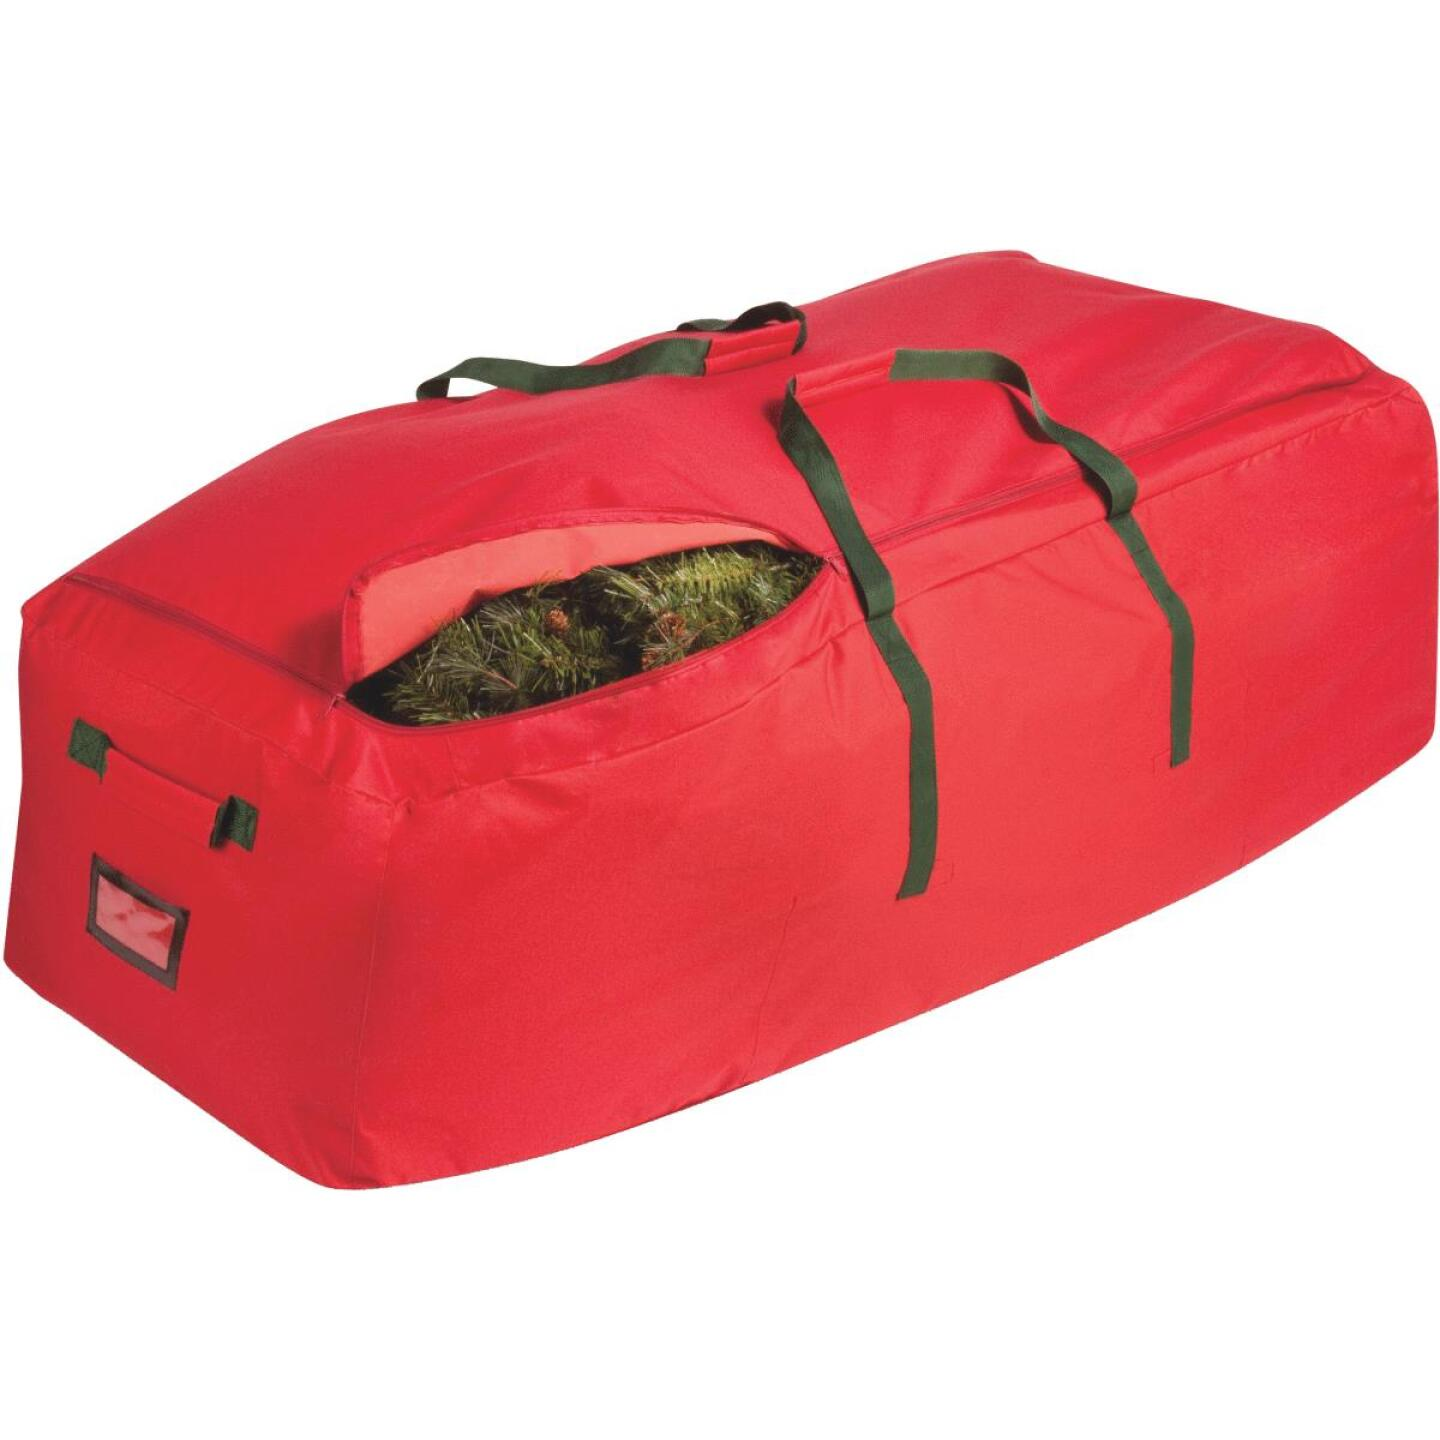 Honey Can Do 10 Ft. Rolling Christmas Tree Storage Bag Image 1